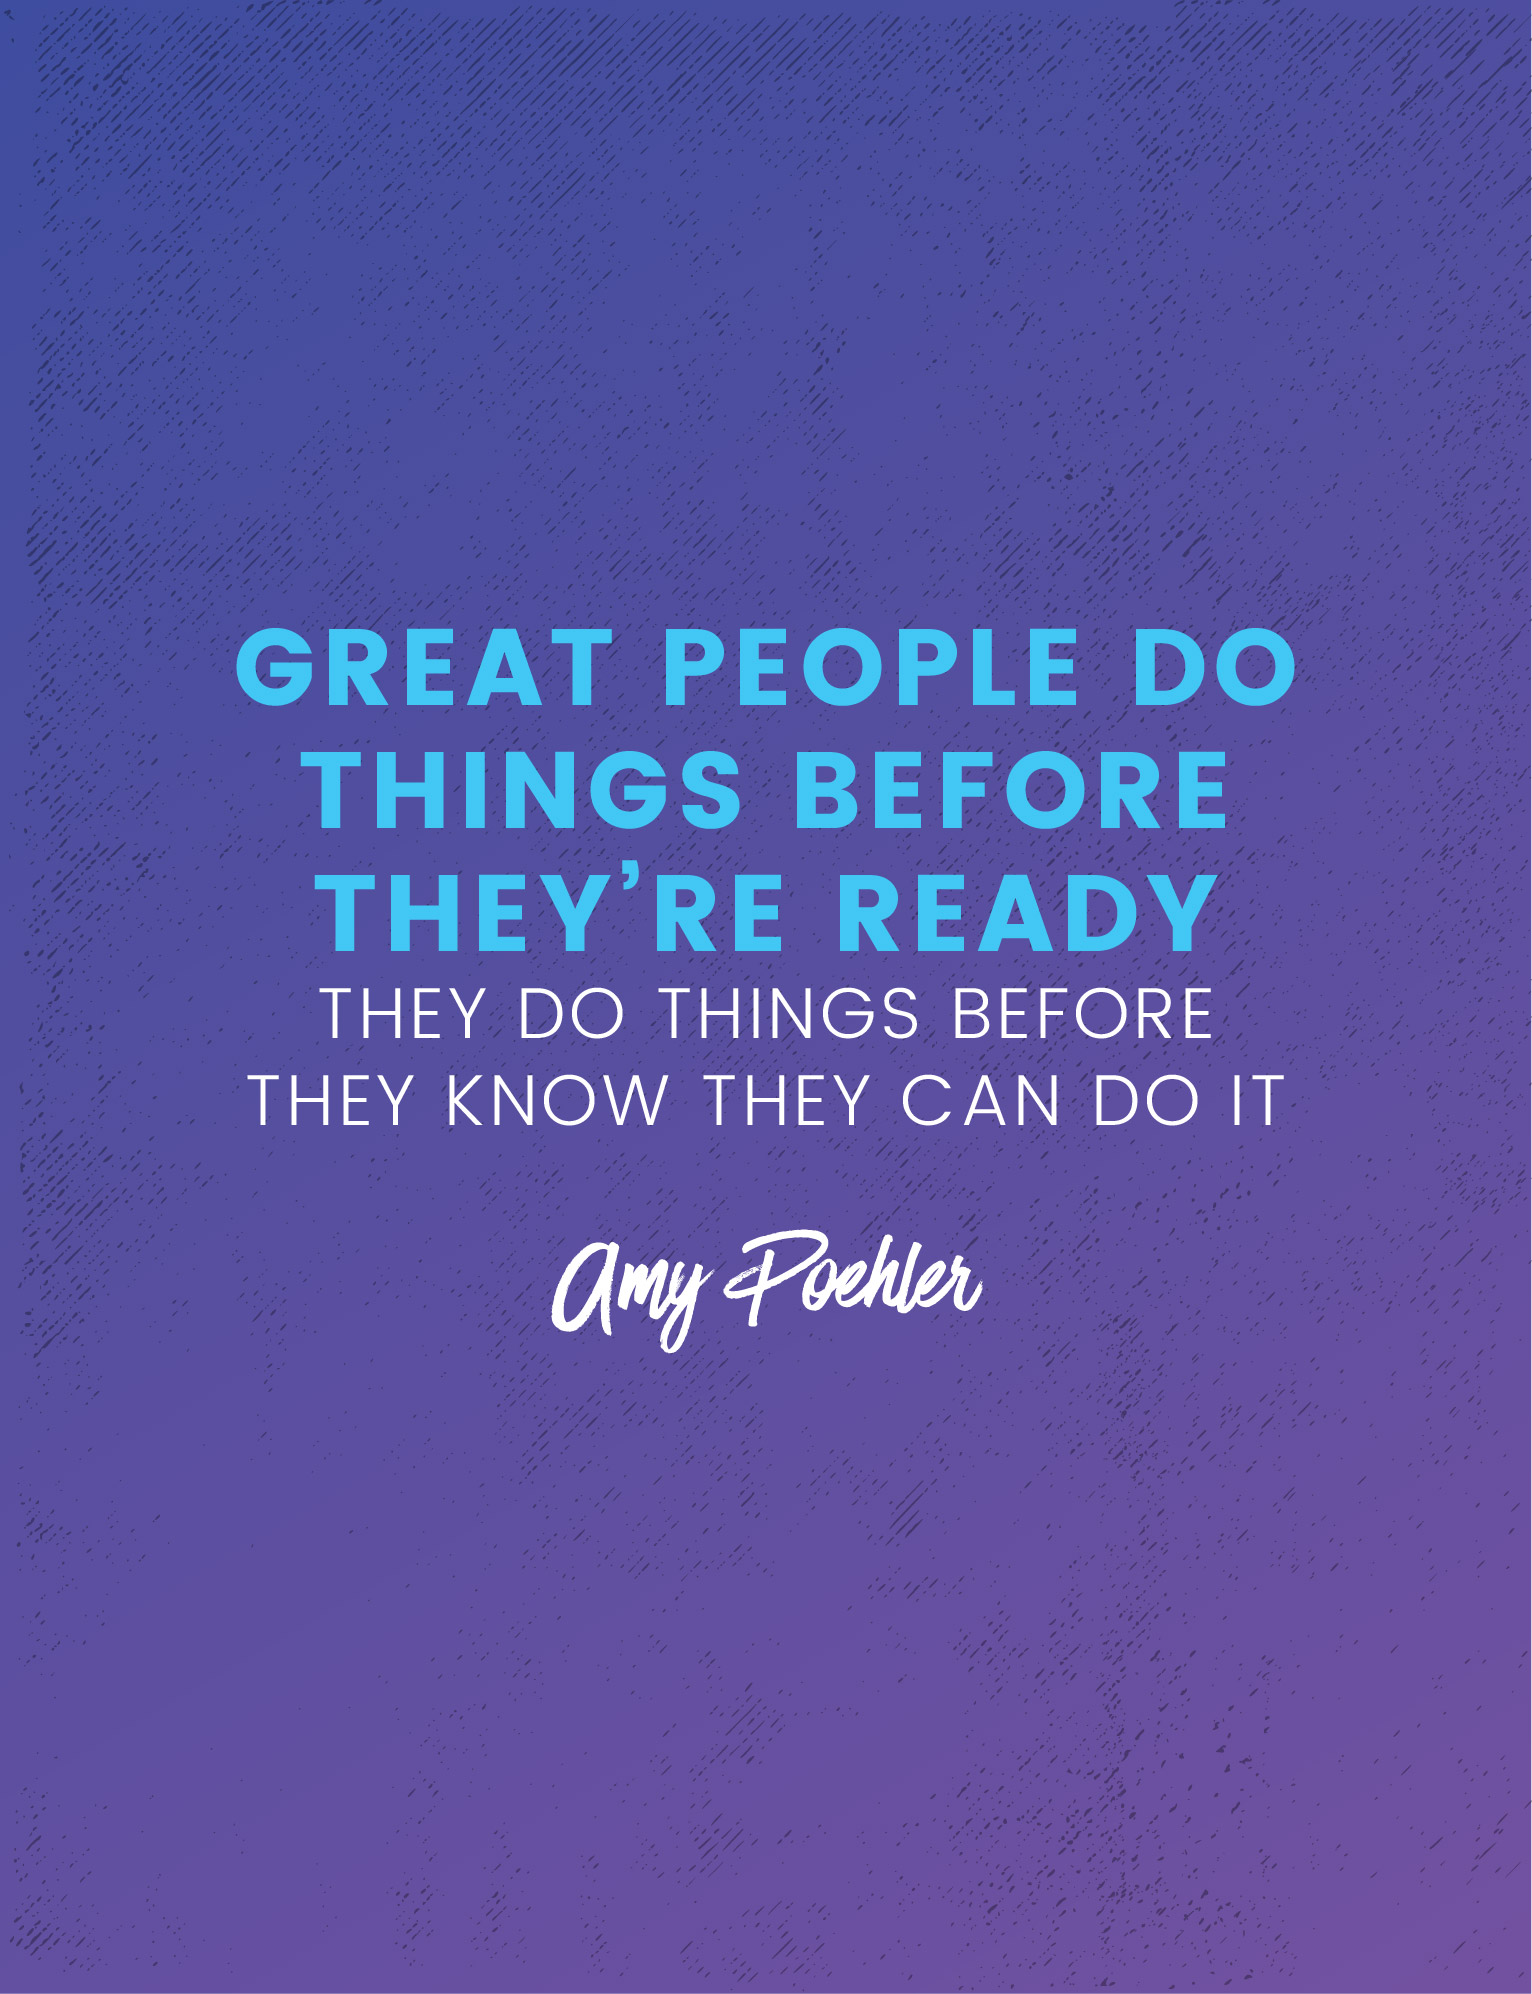 Great people do things before they're ready they do things before they know they can do it